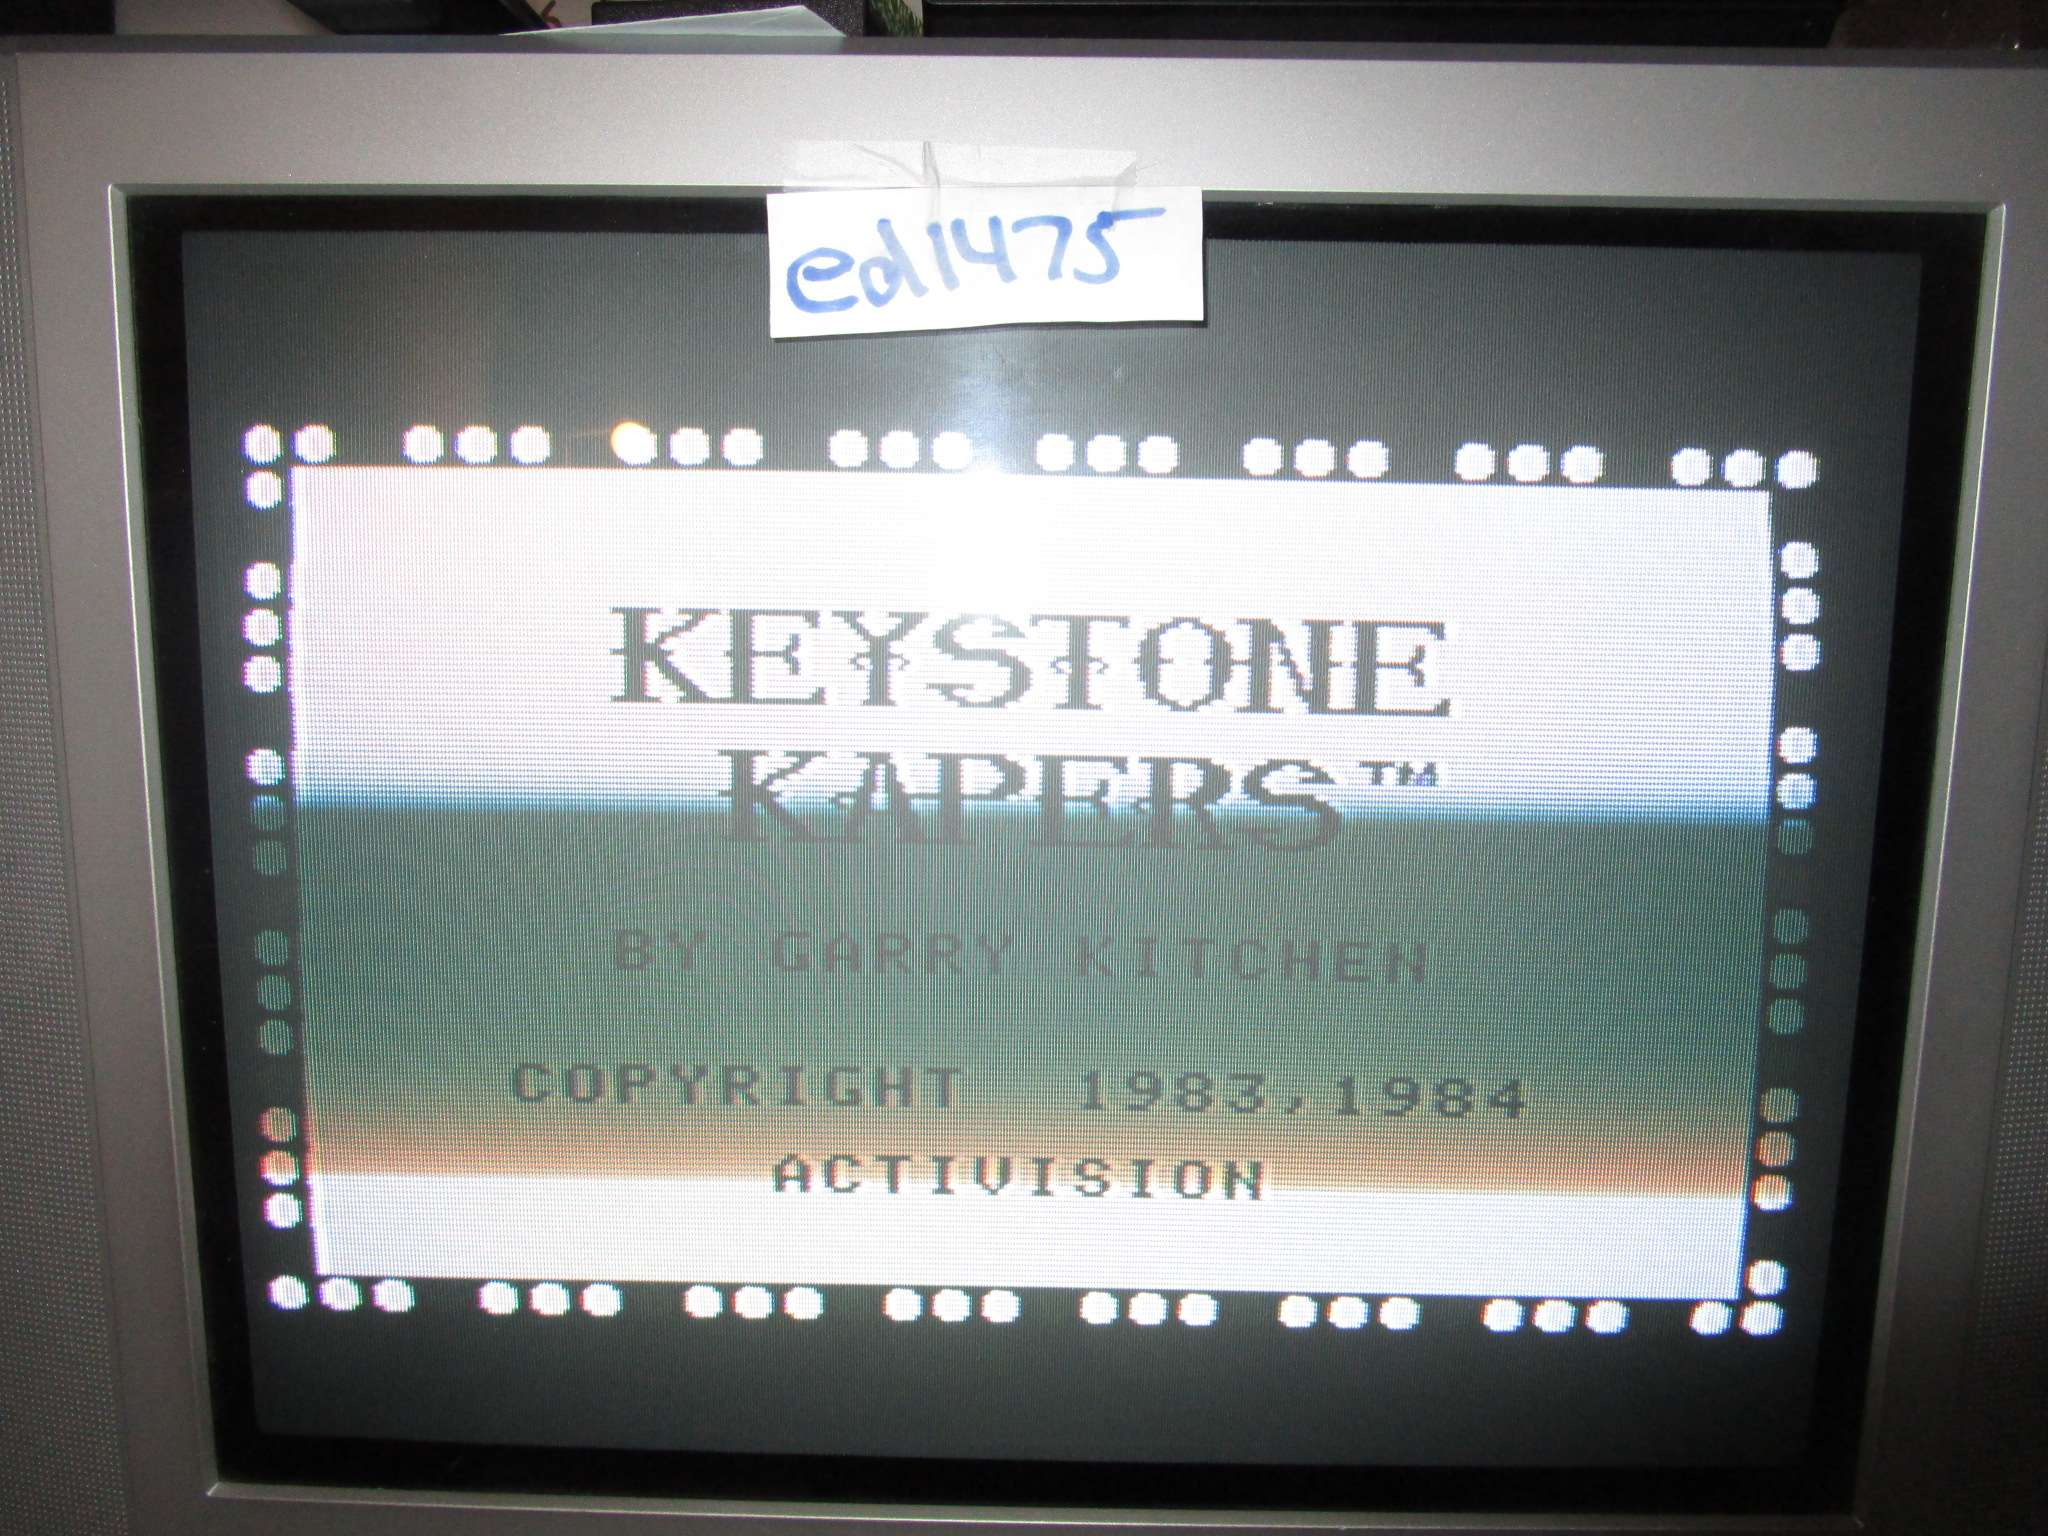 ed1475: Keystone Kapers (Colecovision) 6,350 points on 2015-05-21 21:49:47